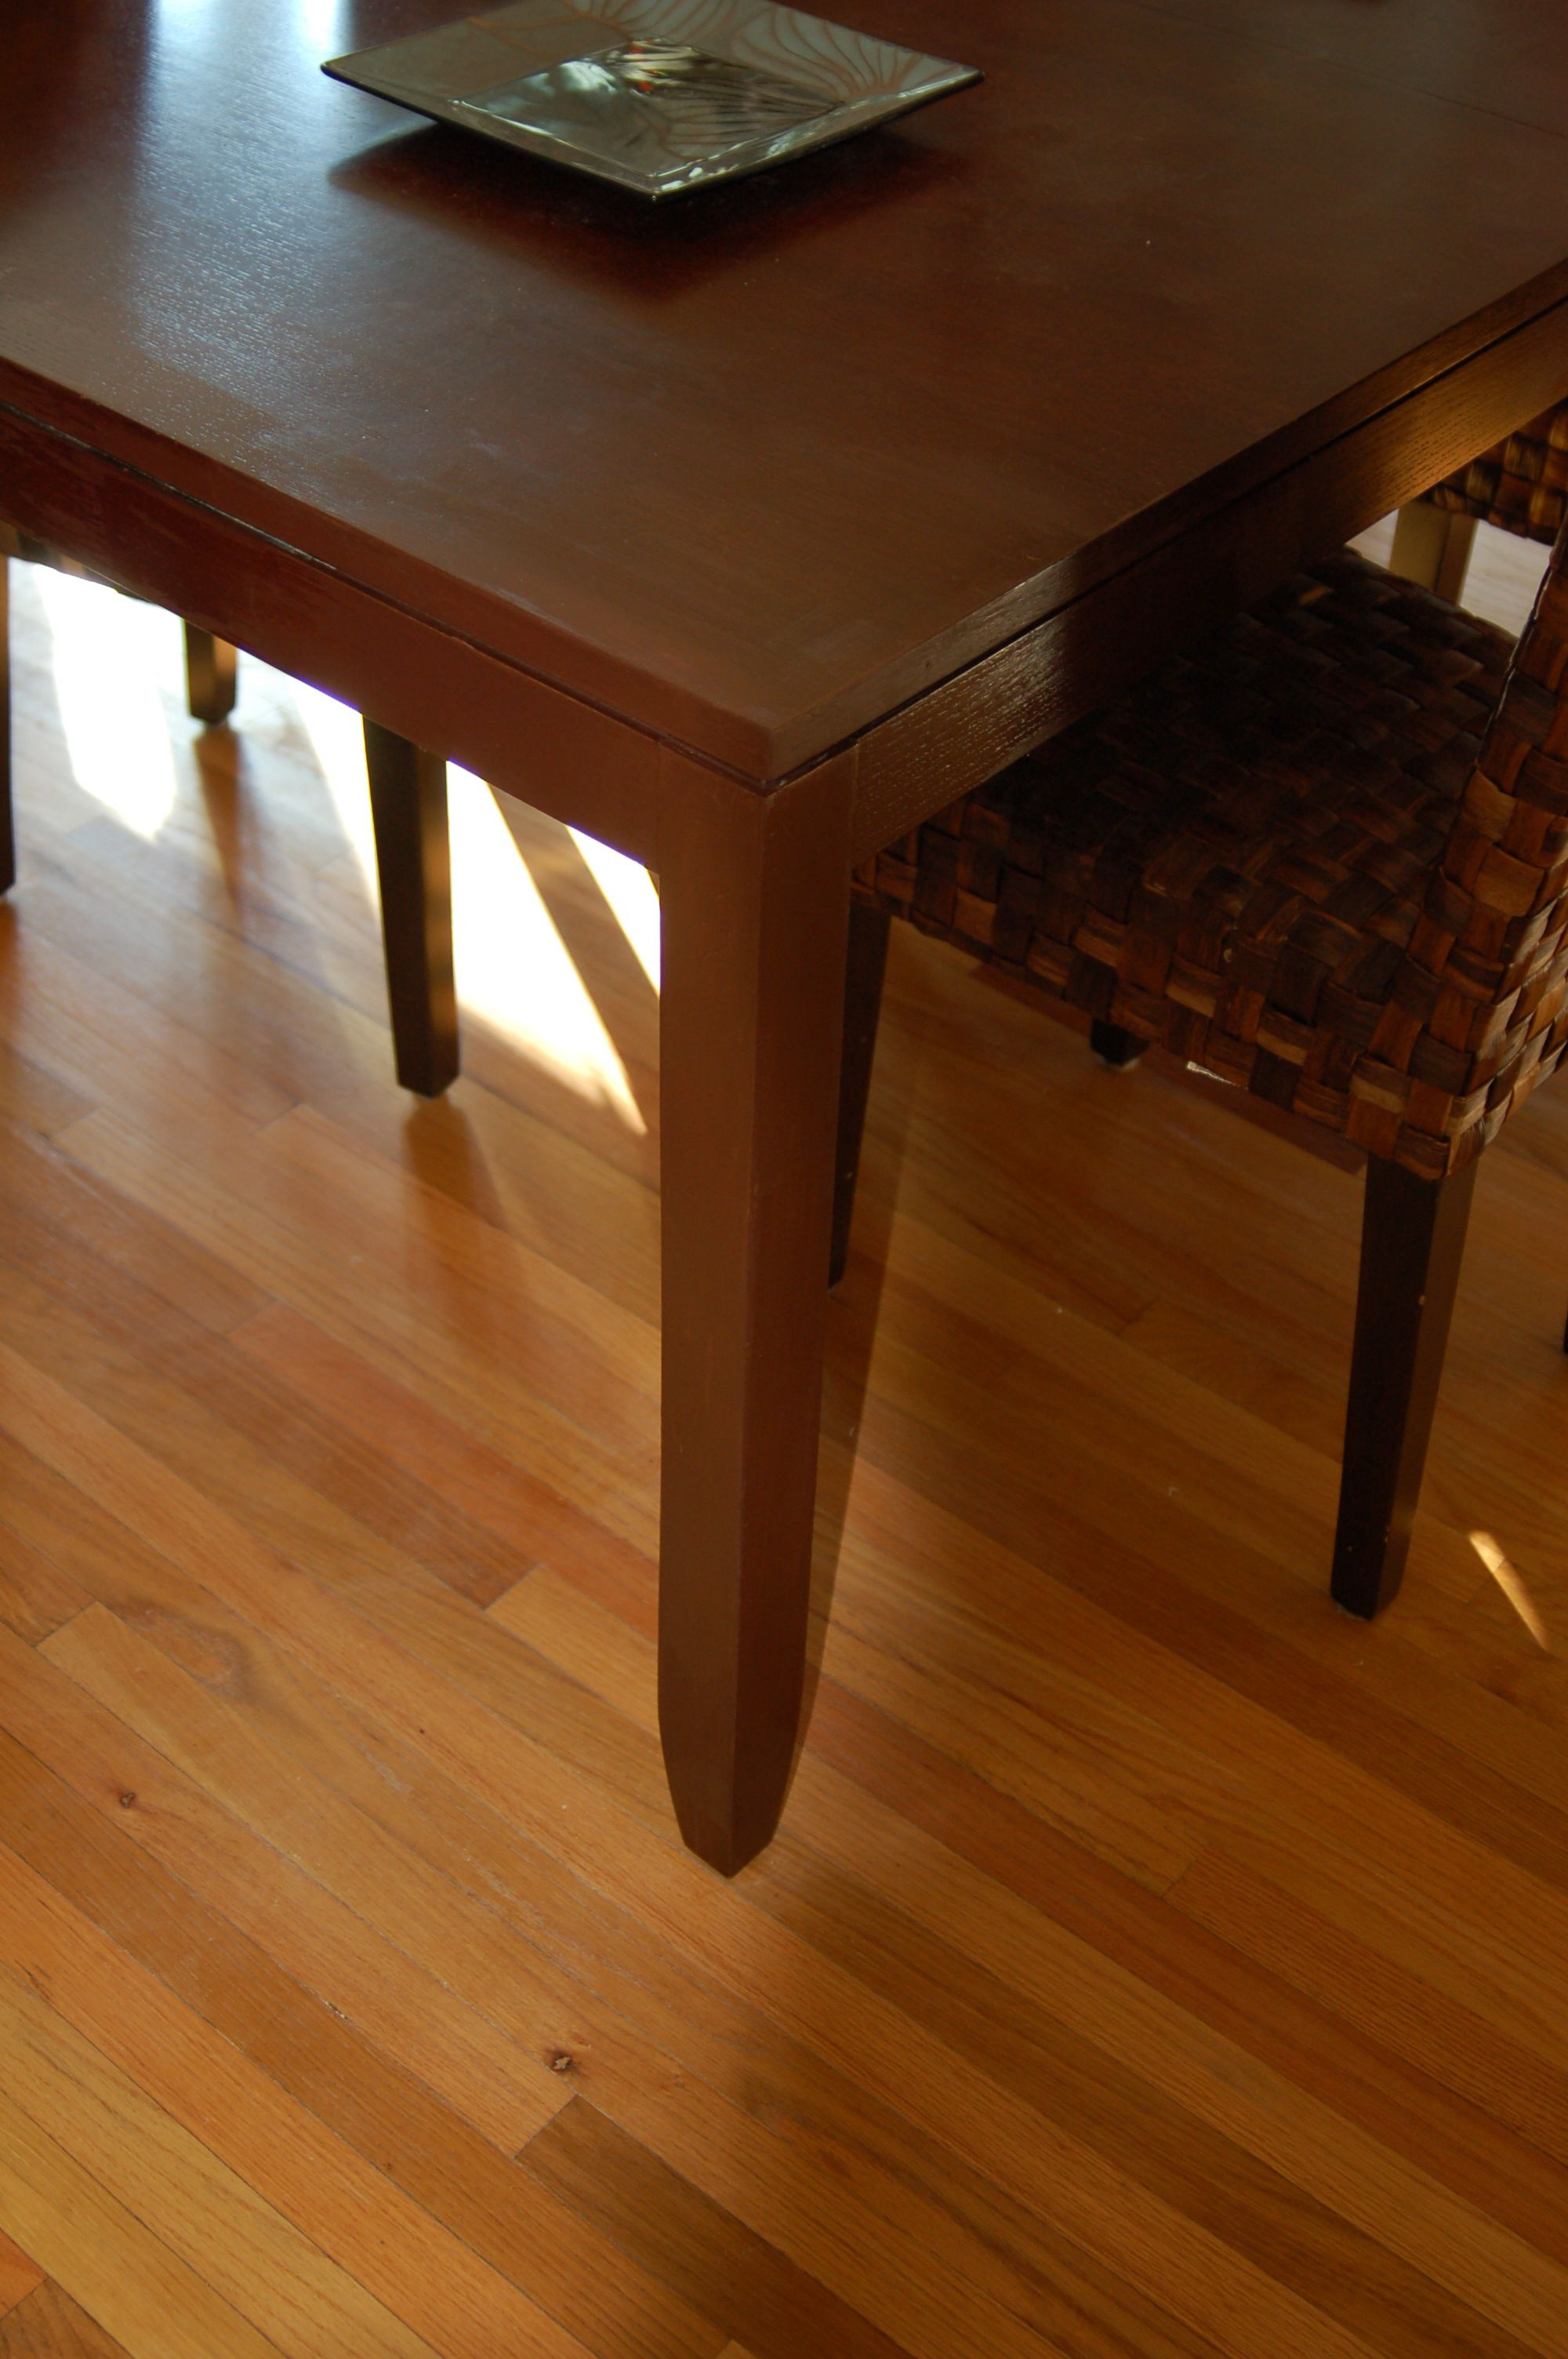 minwax hardwood floor care system of minwax toffee stain water based life with kids pinterest minwax intended for minwax toffee stain water based